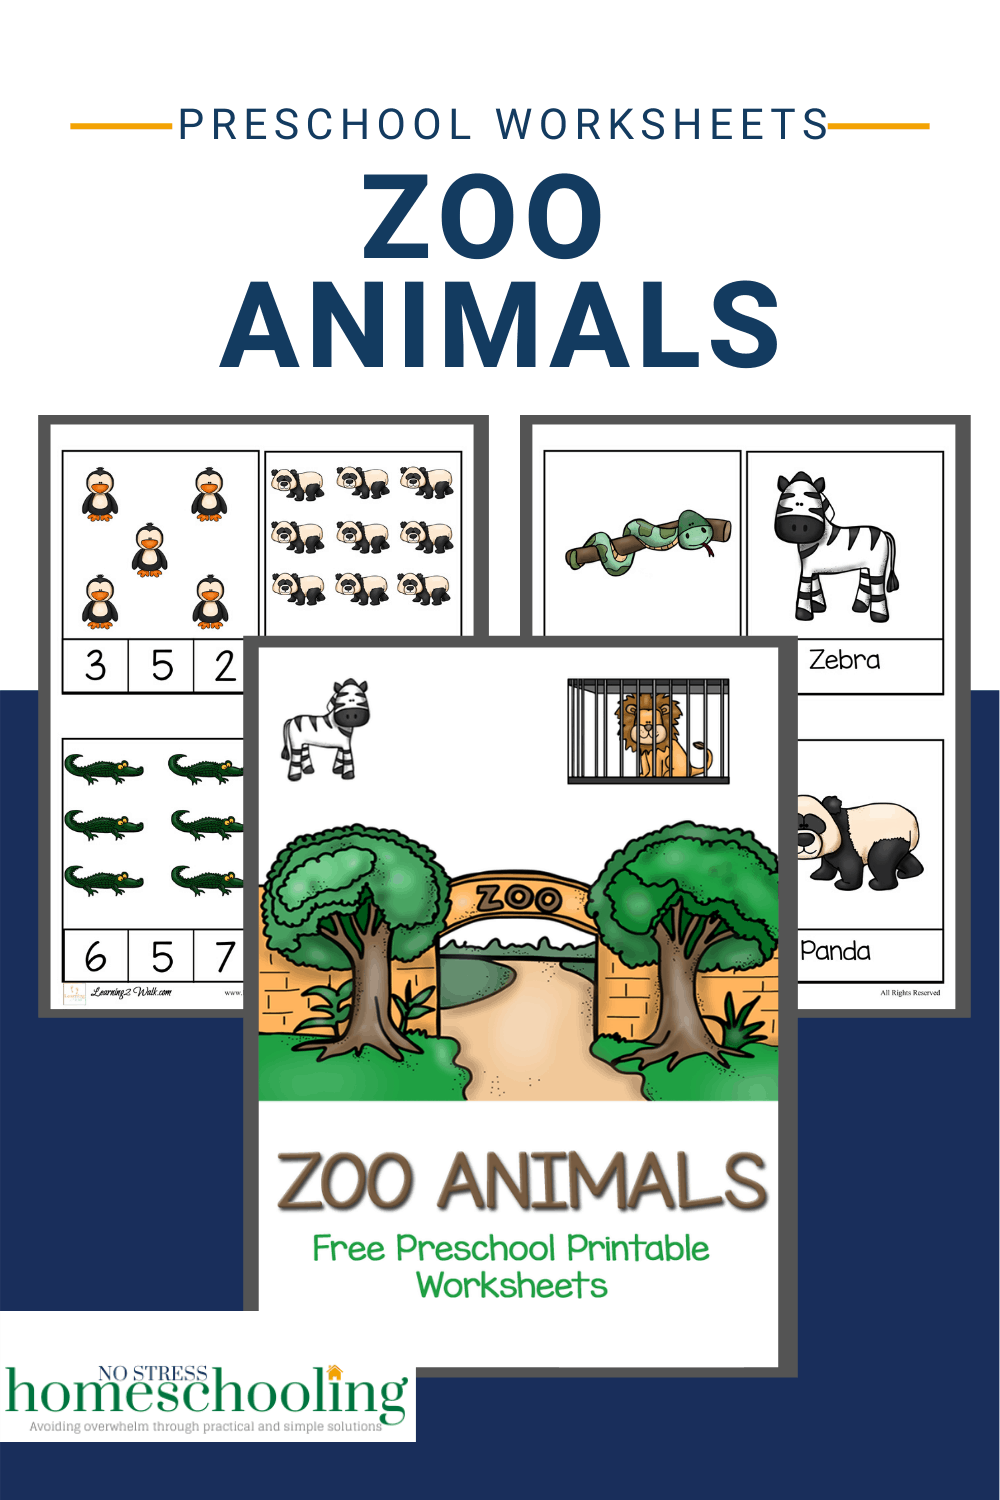 pic showing printable zoo animals worksheets